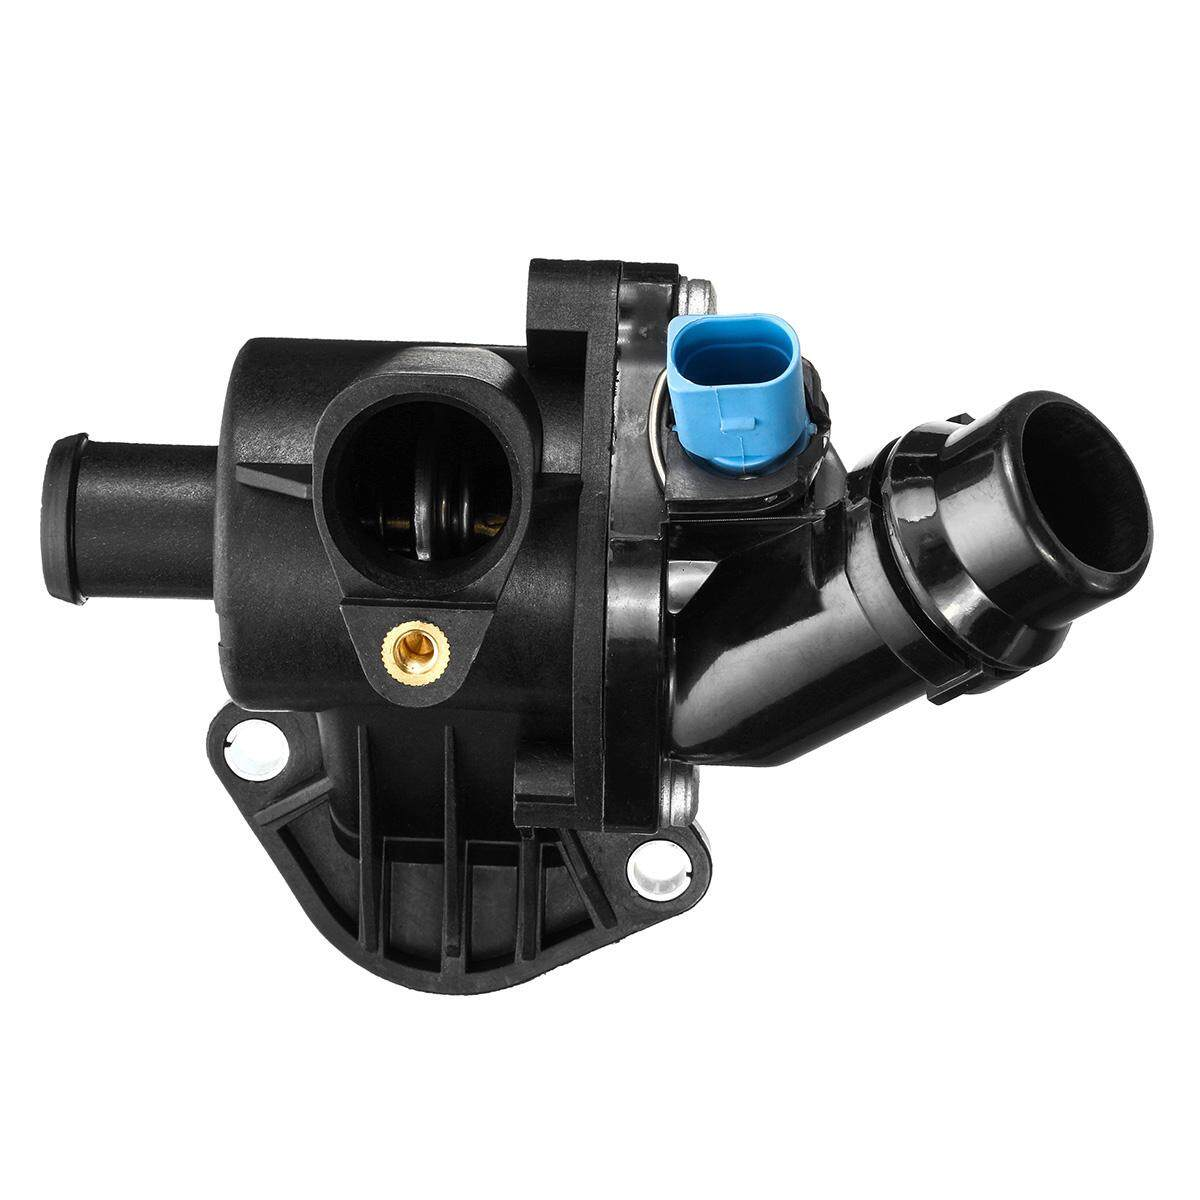 hight resolution of philippines discount 06b121111k engine coolant thermostat with housing for audi a4 avant quattro intl buy now only 969